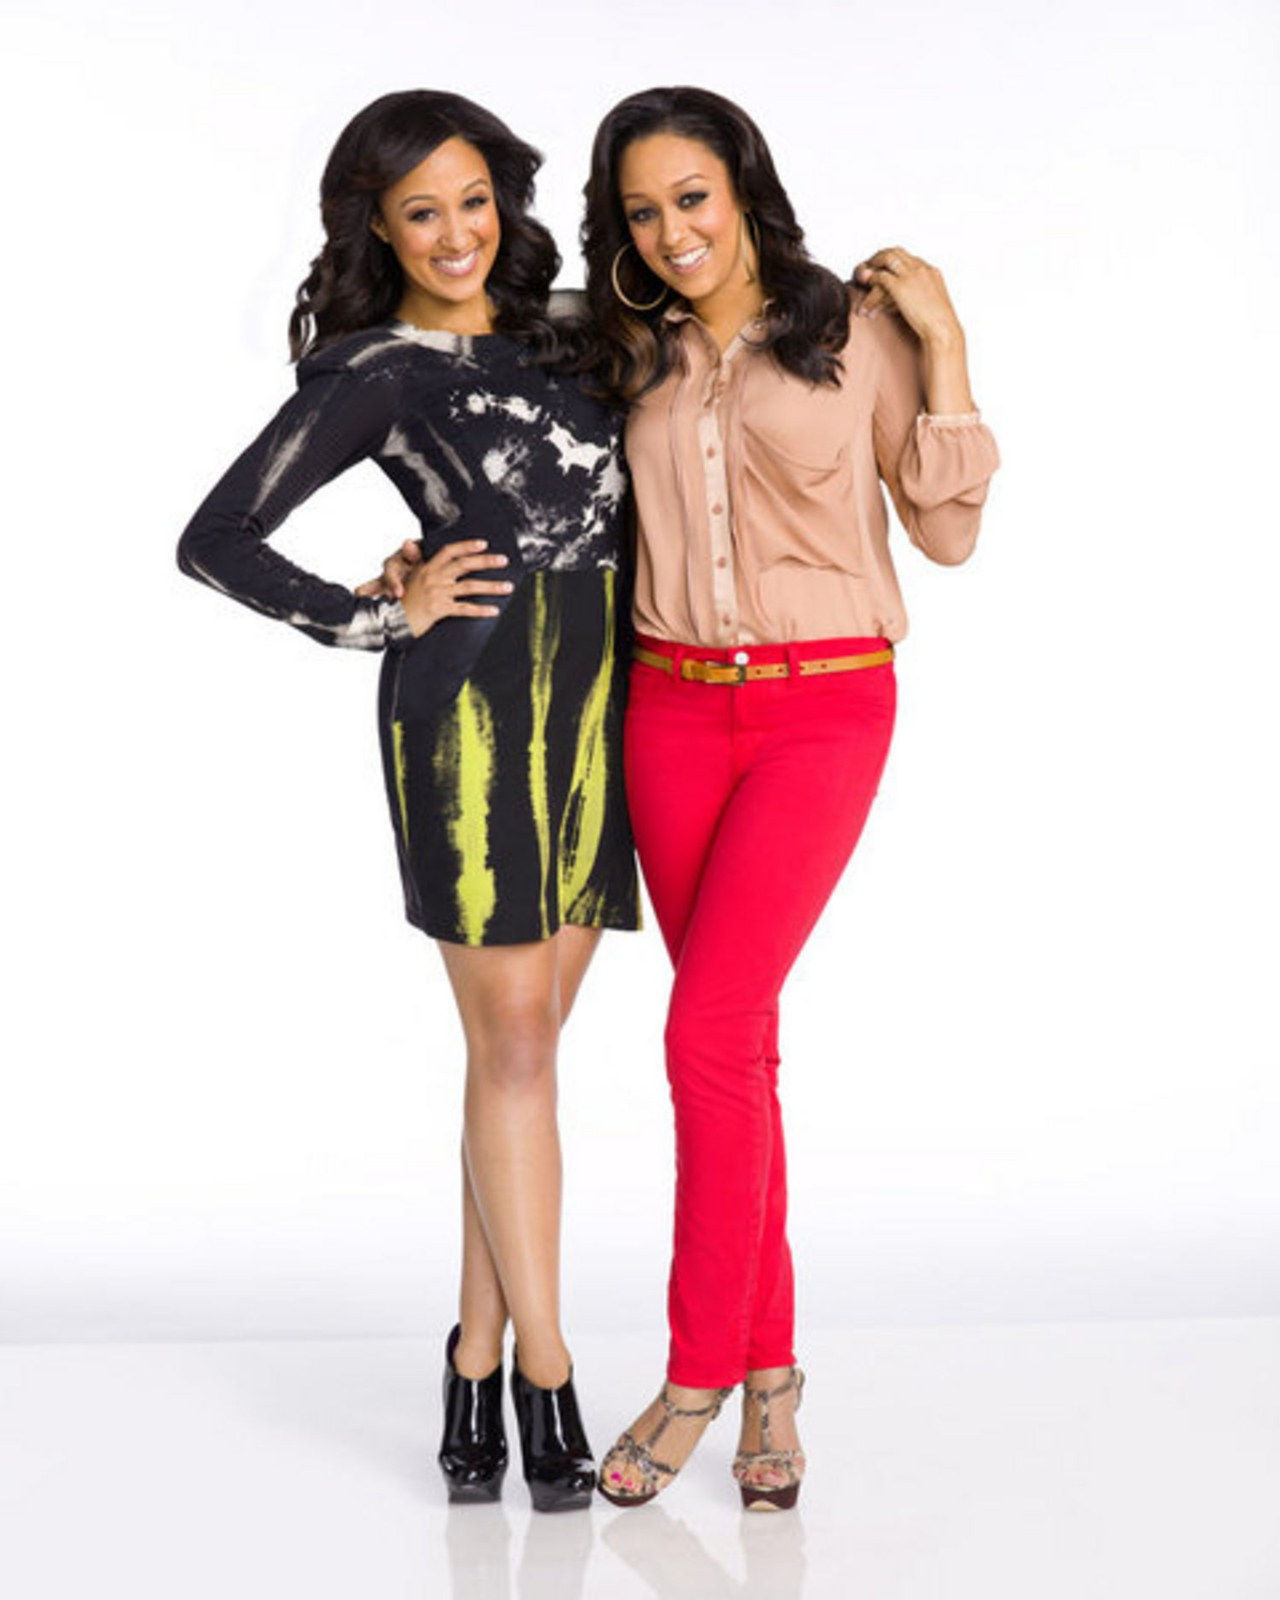 تيا and tamera season 3 second pic